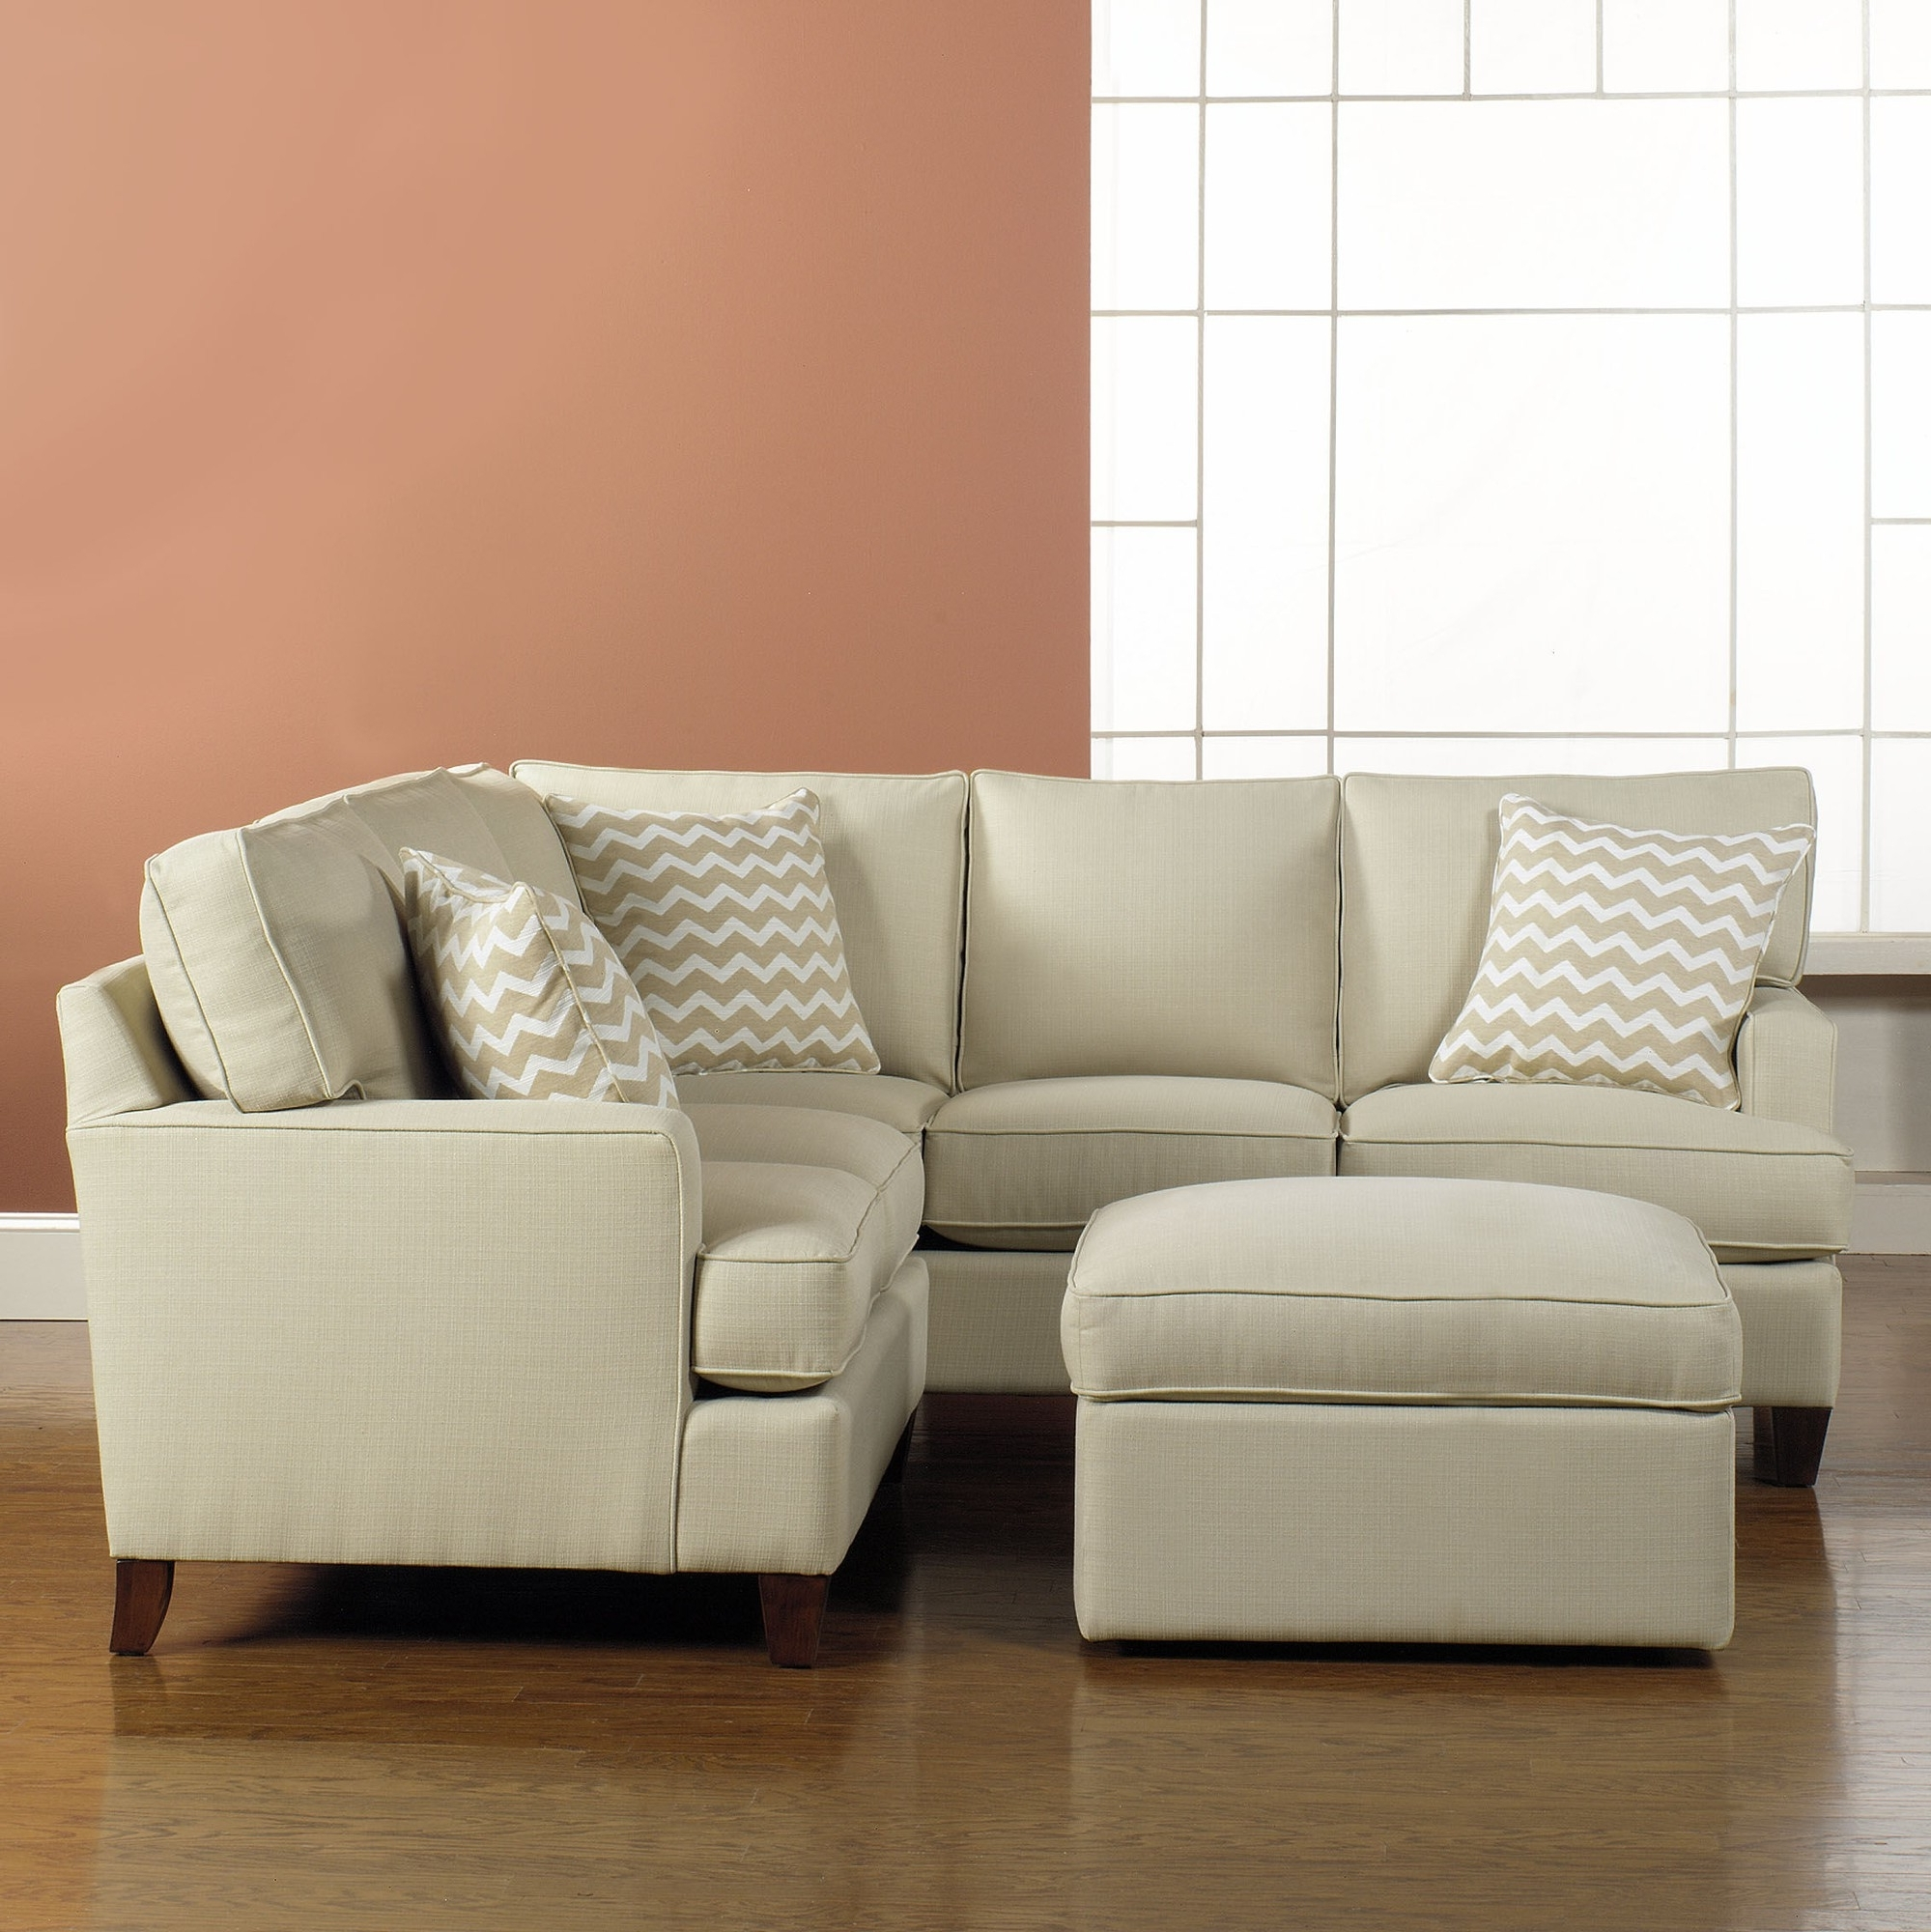 Sectional Sofas For Small Rooms Intended For Most Recent Awesome Small Sectional Sofa For Small Spaces – Buildsimplehome (View 5 of 15)